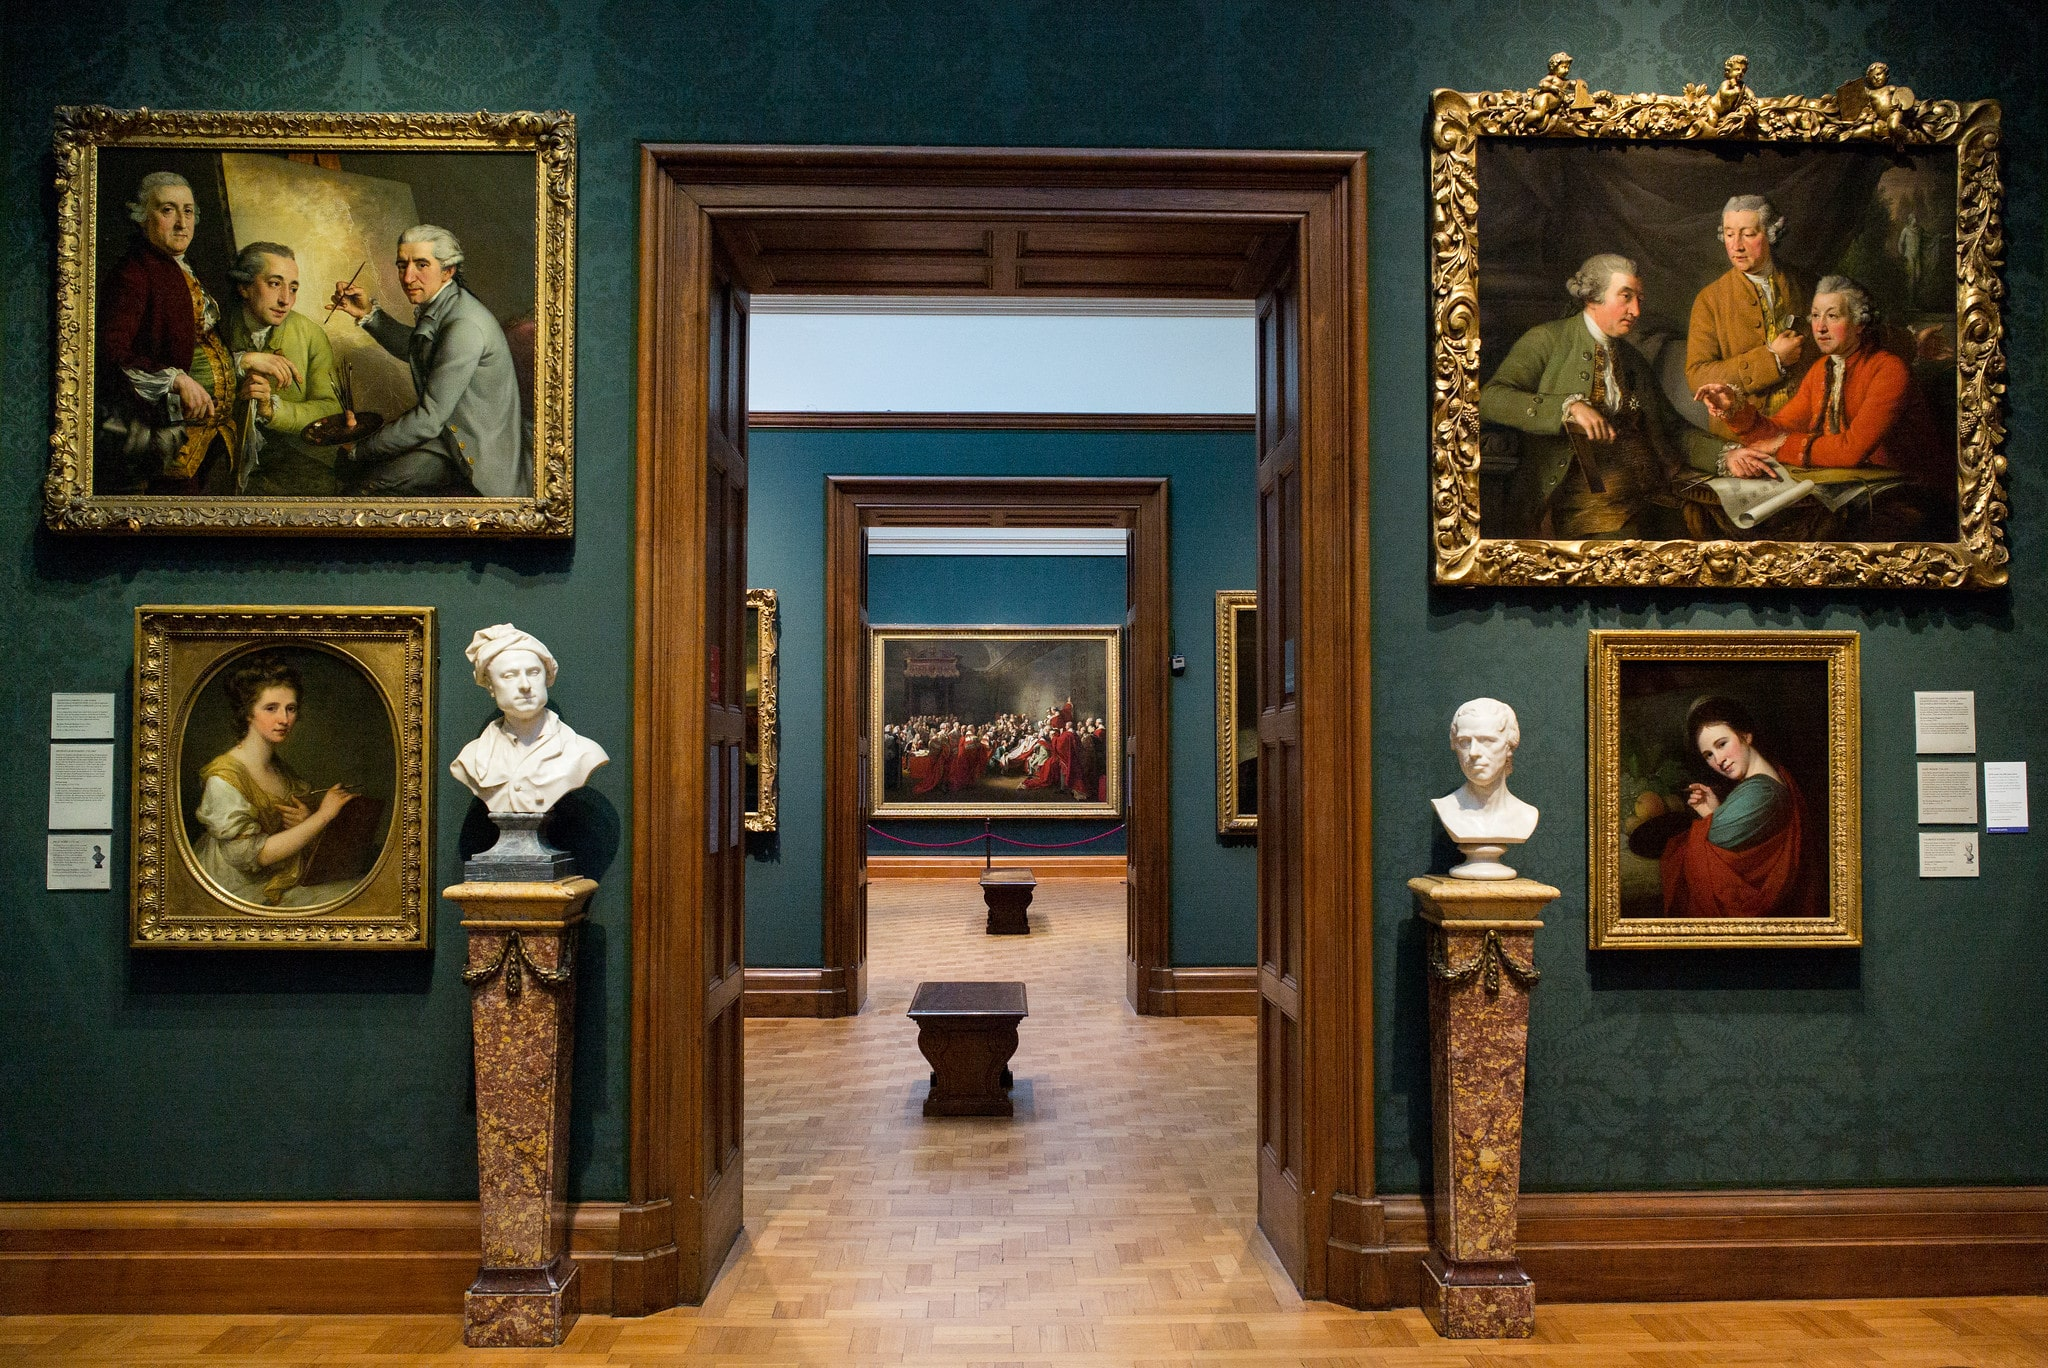 The National Portrait gallery is an artsy and historical place to visit in London